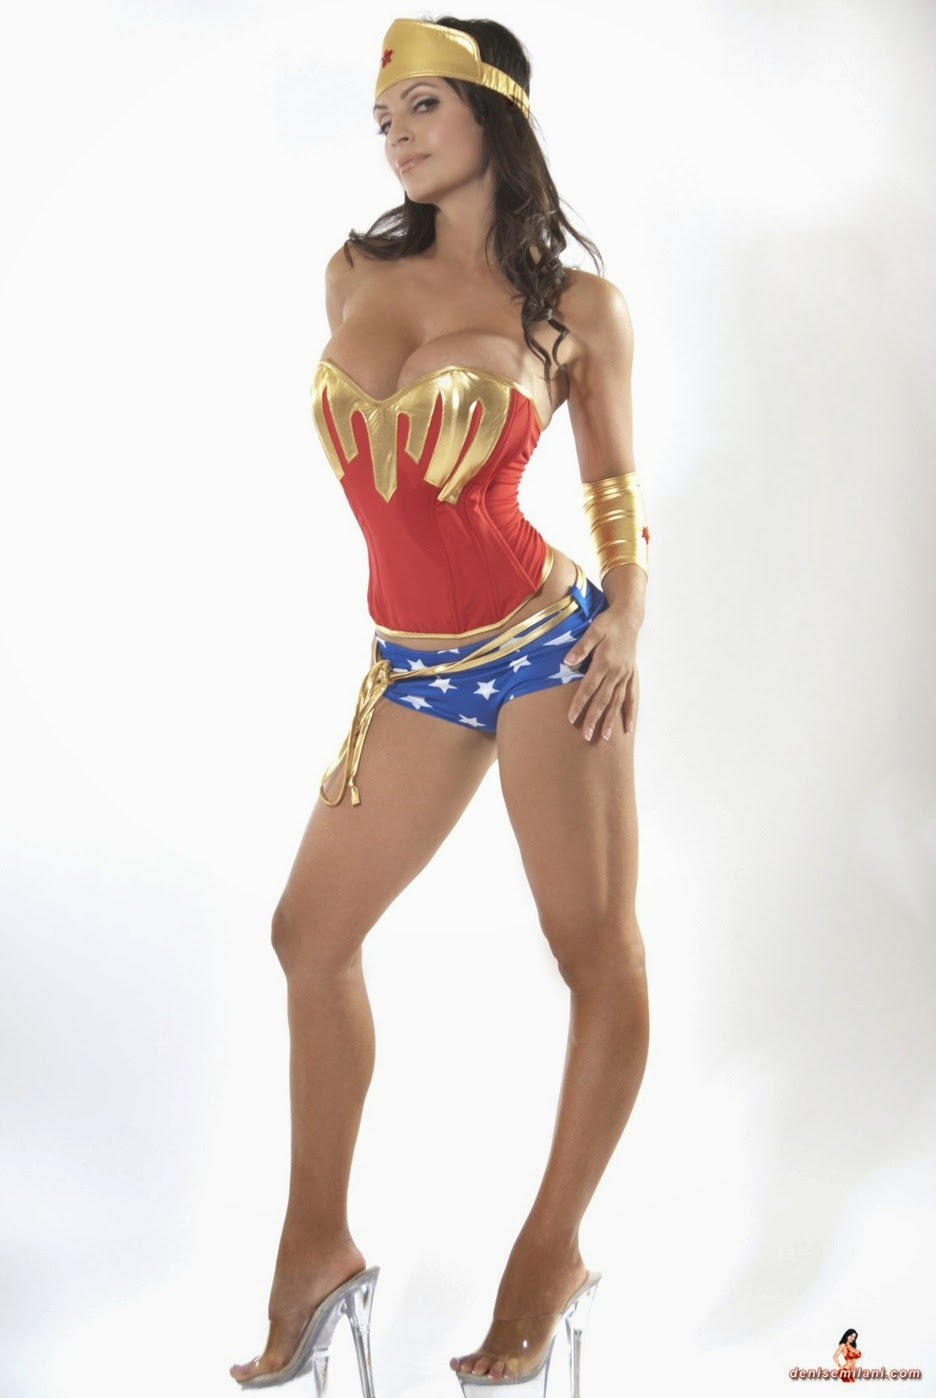 Denise Milani wonder woman